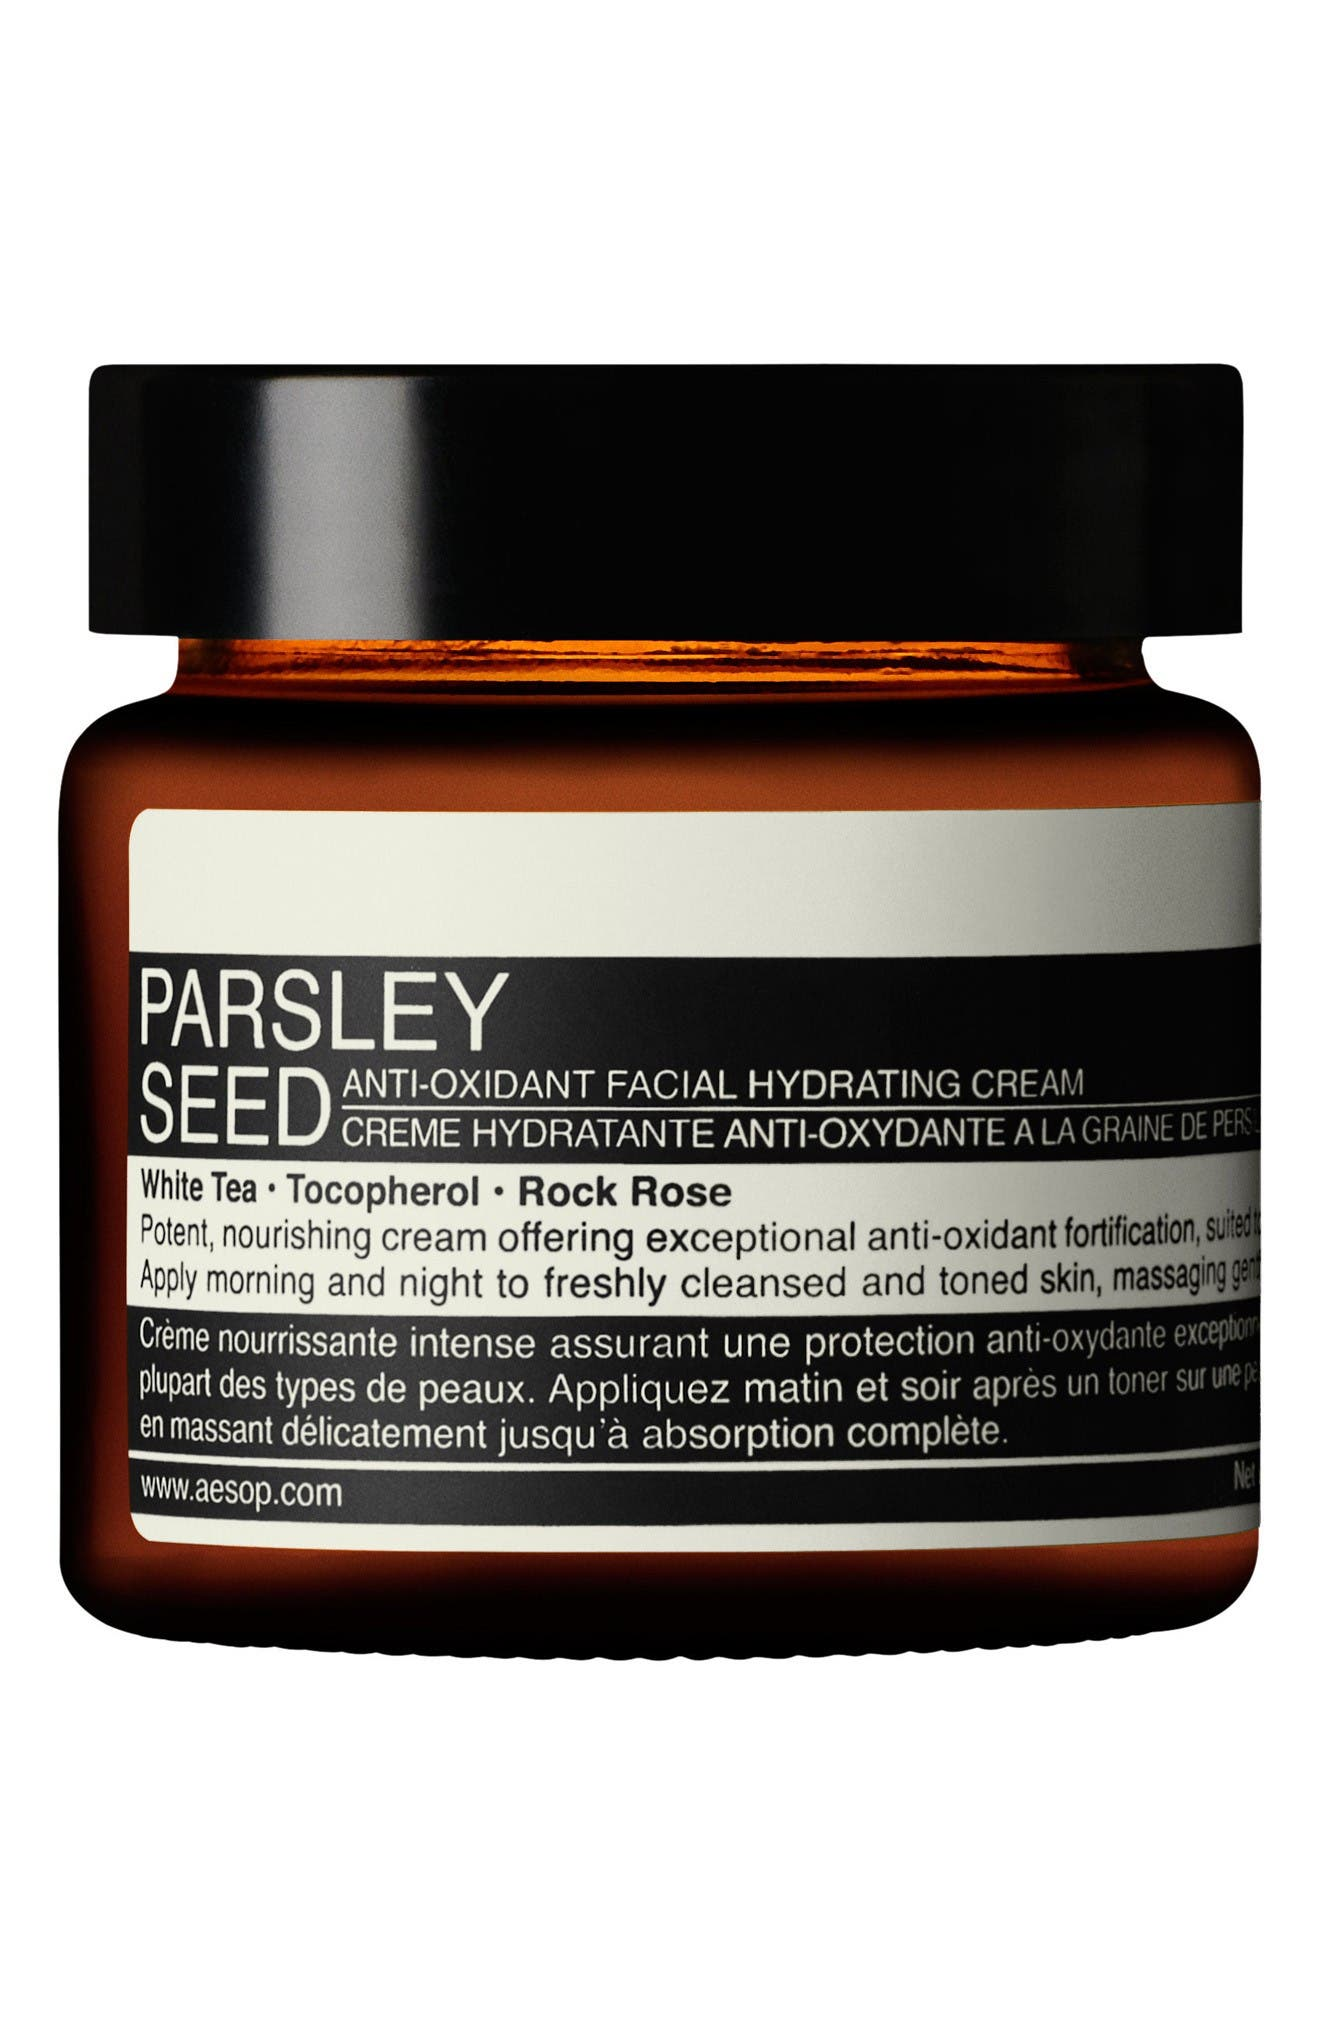 Aesop Parsley Seed Anti-Oxidant Facial Hydrating Cream